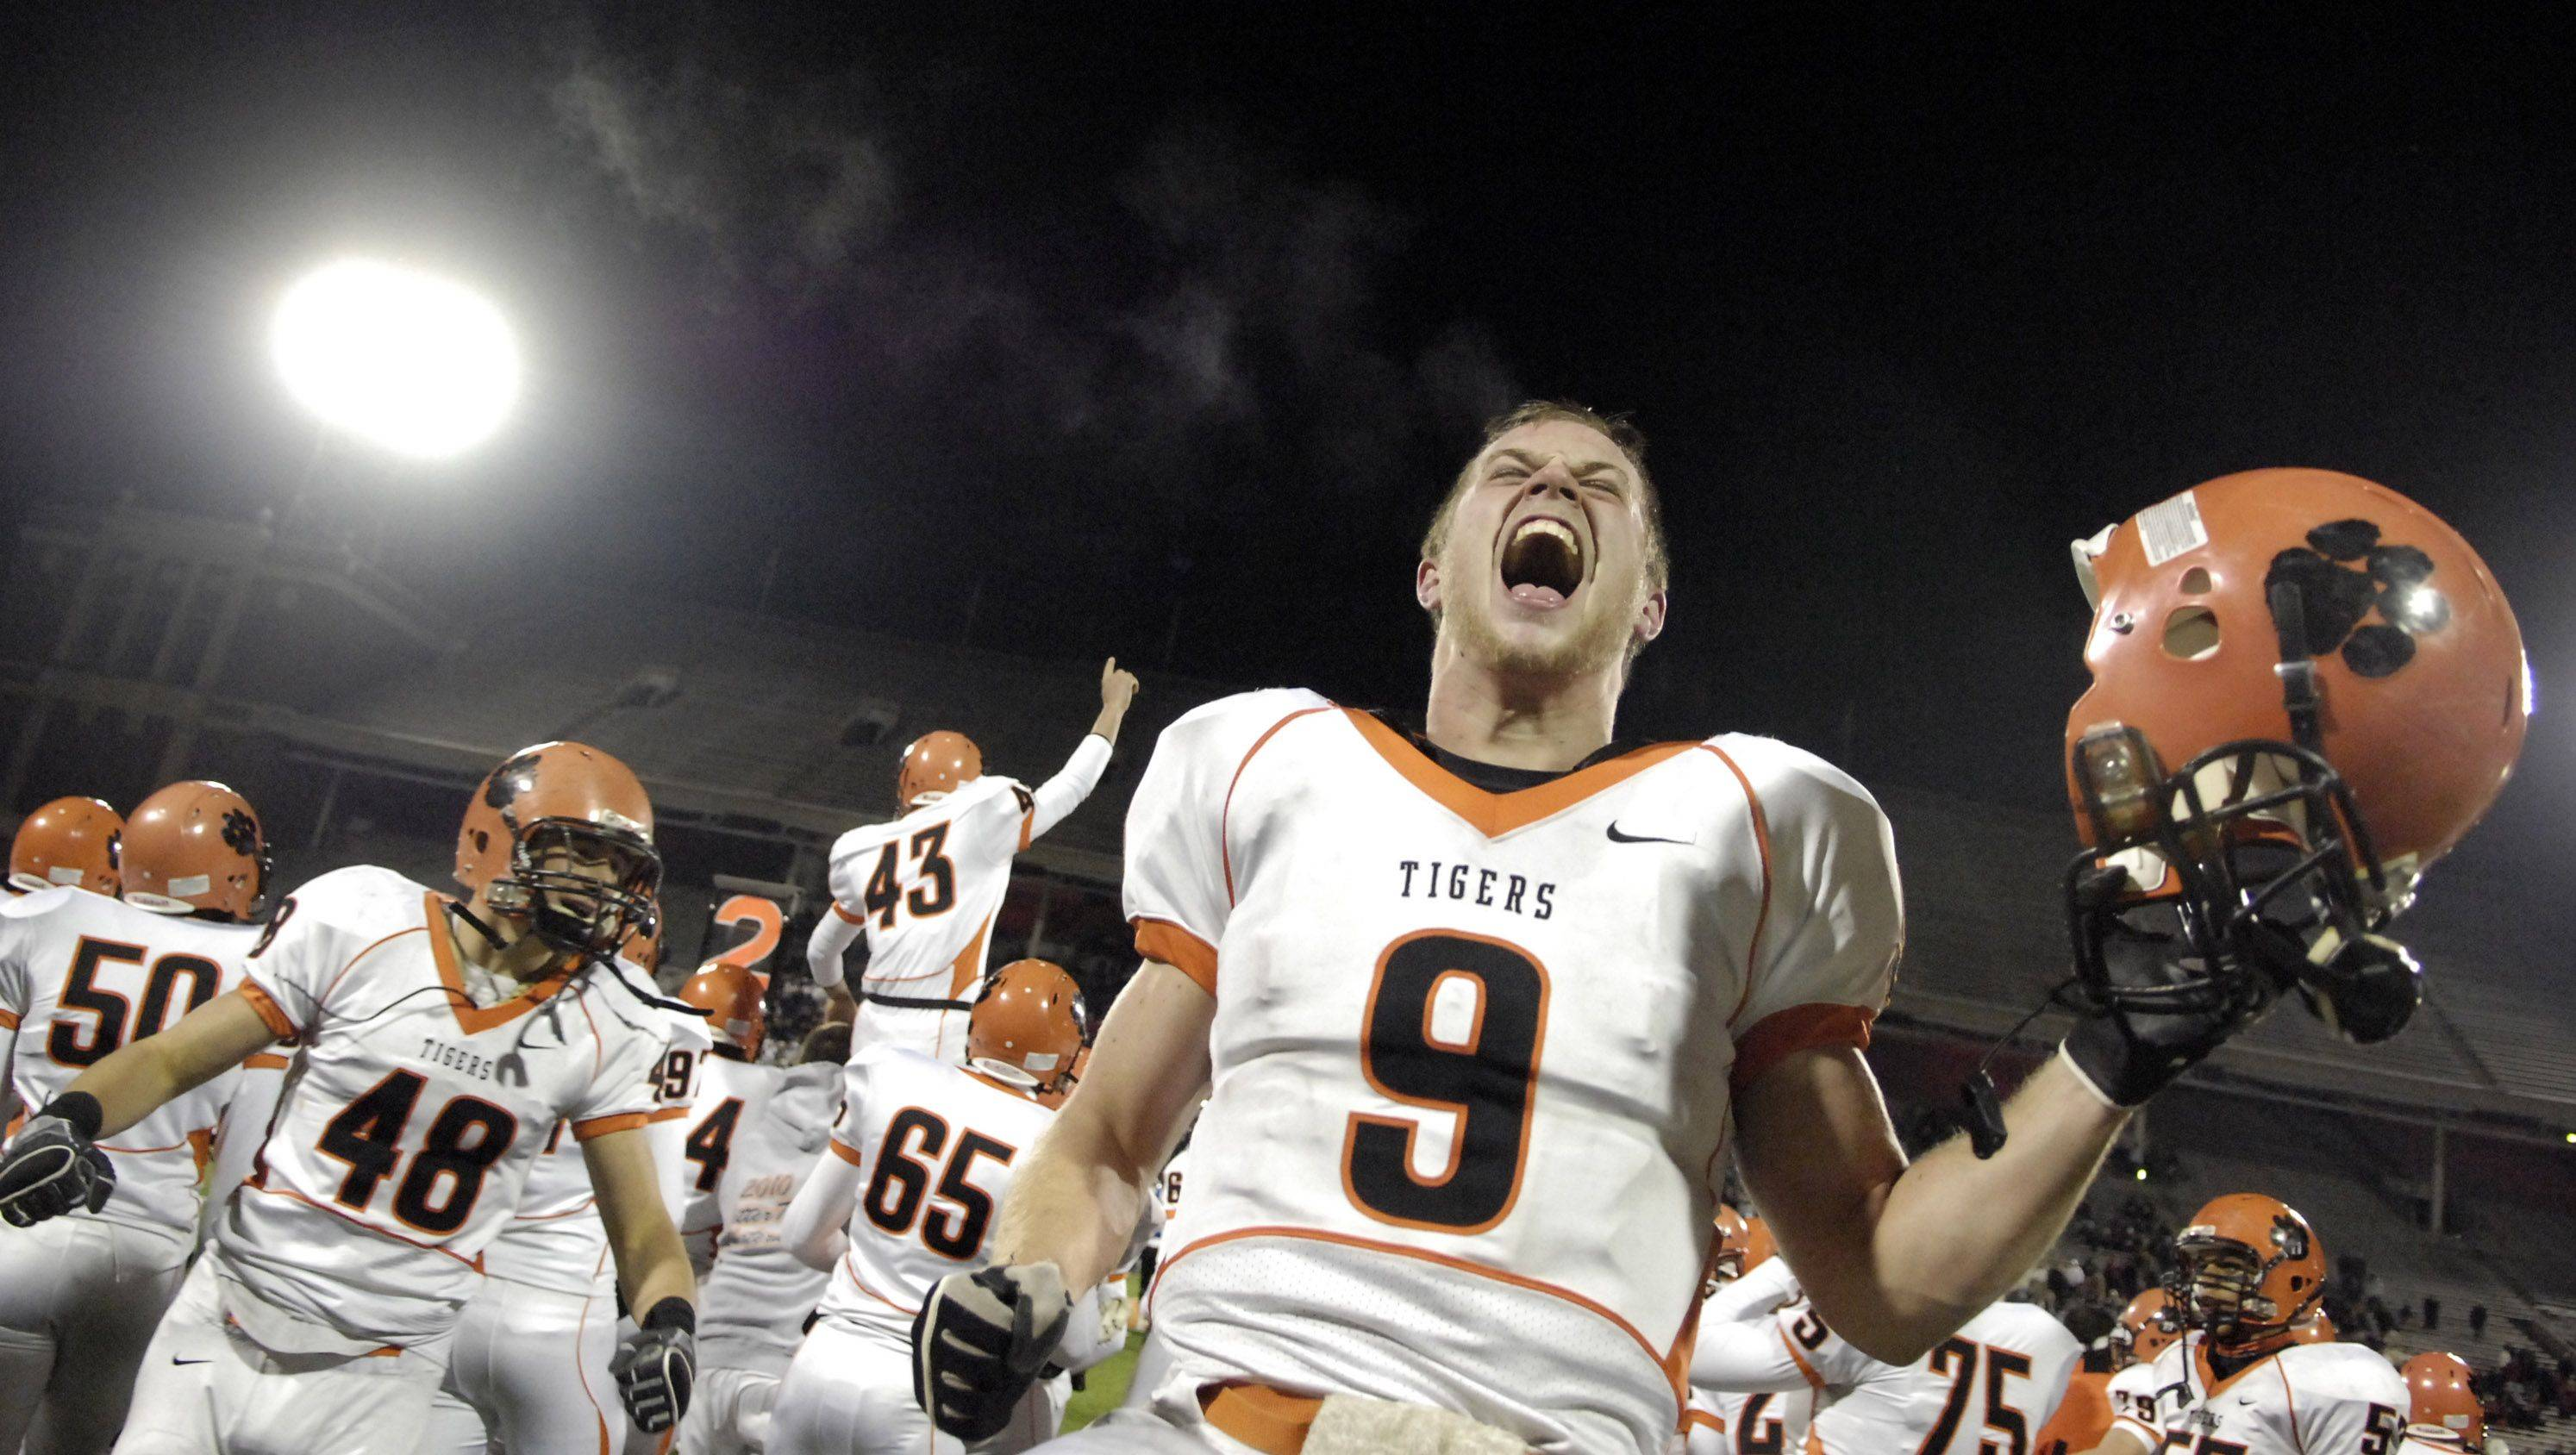 Wheaton Warrenville South's Matt Rogers and his teammates celebrate as the final seconds tick off the clock in their win over Lake Zurich during the Class 7A state final in Champaign Saturday.